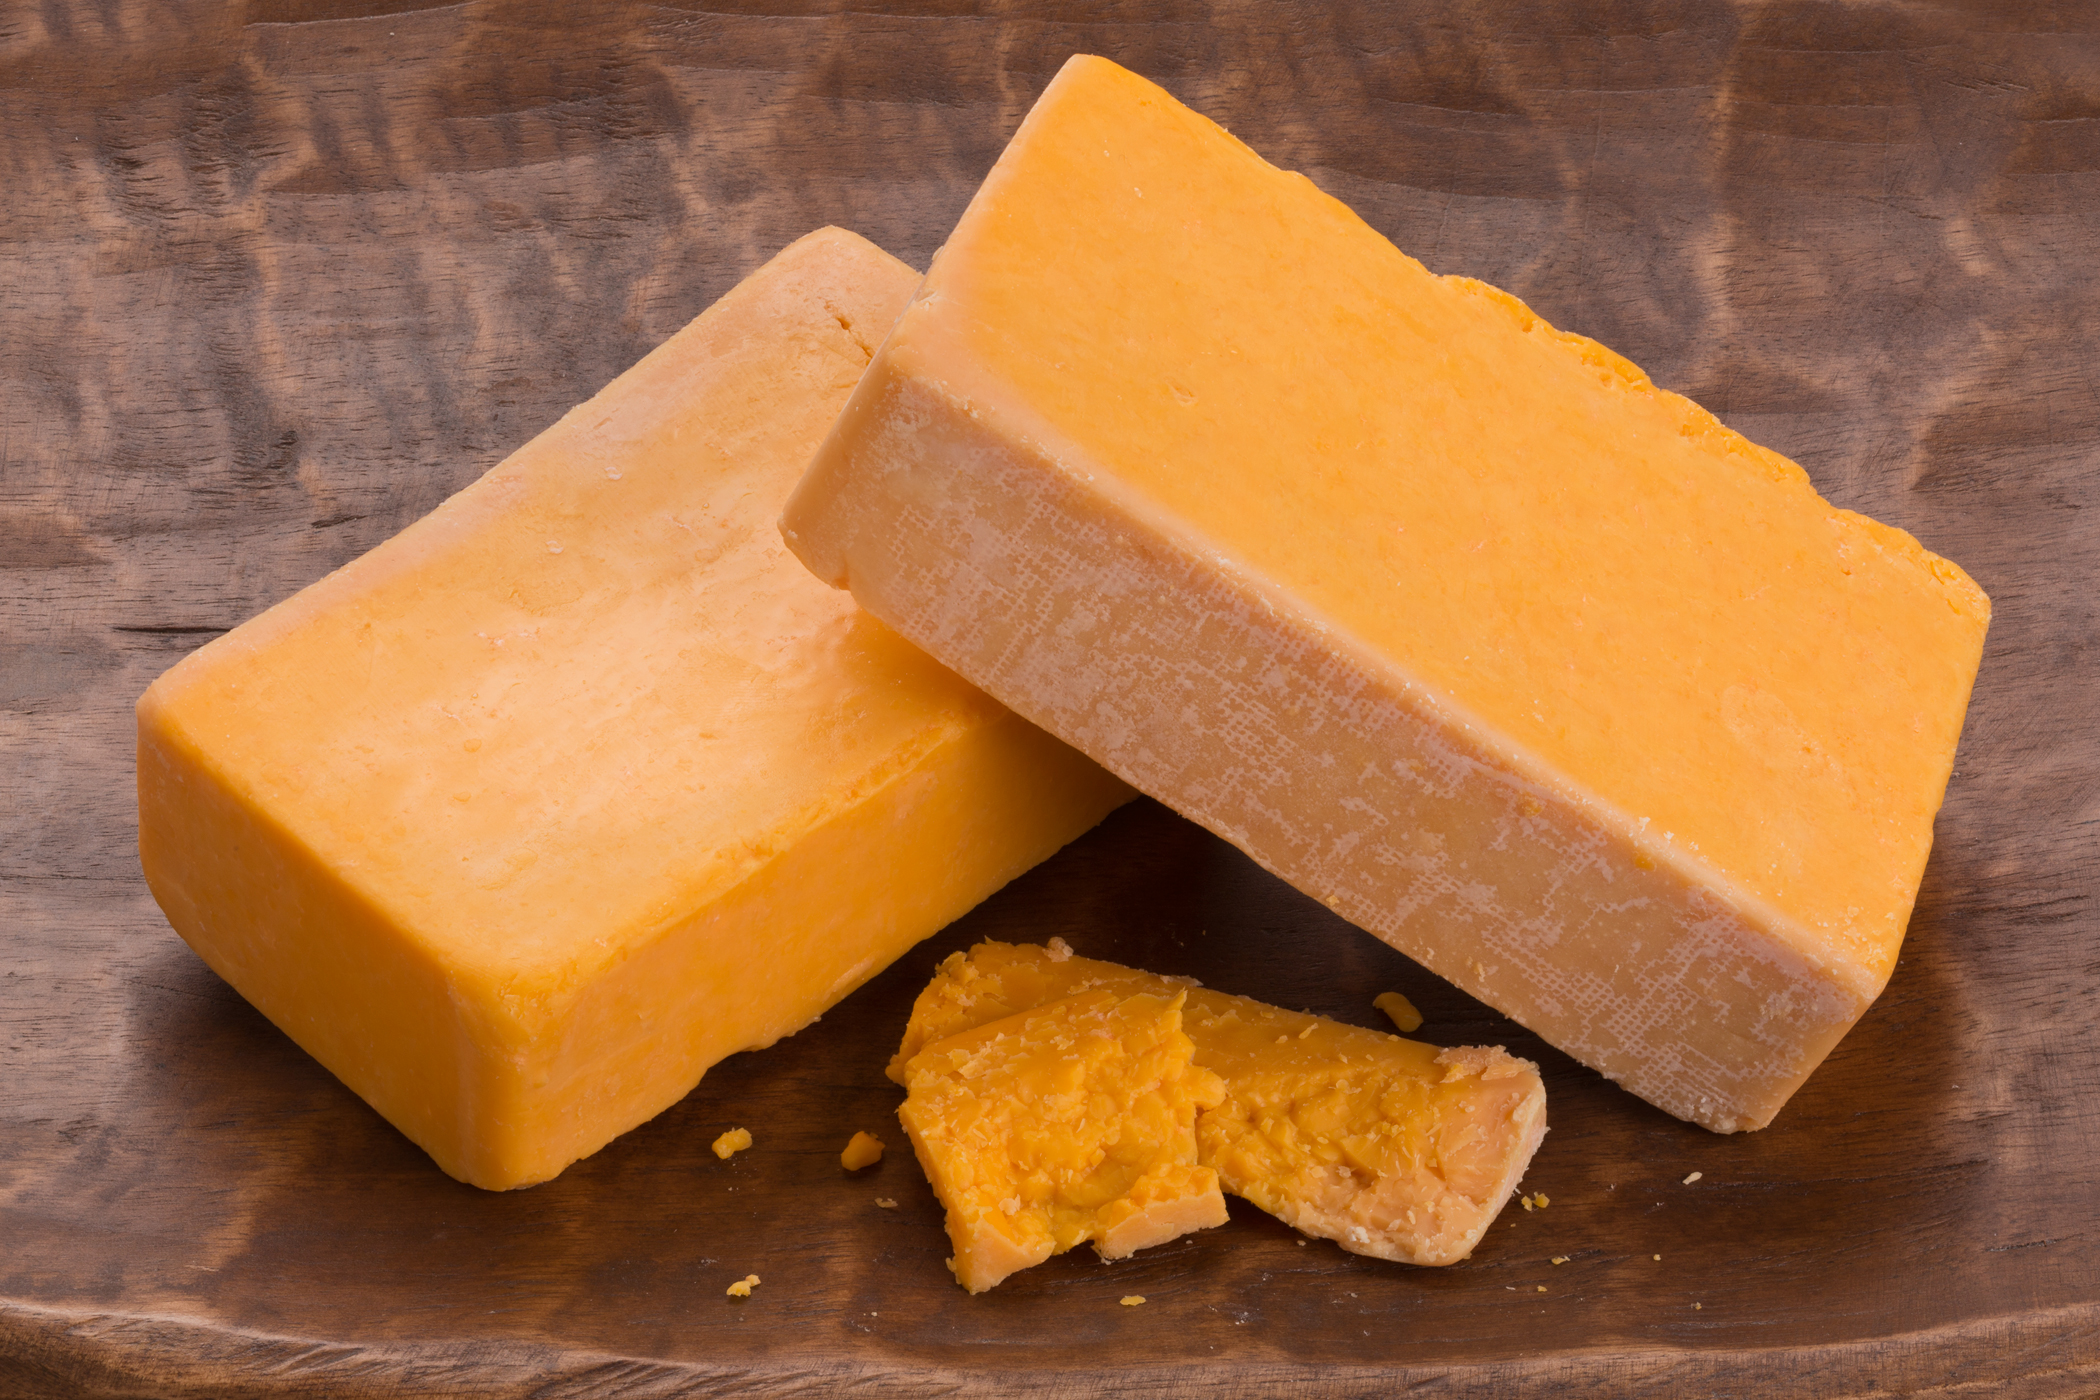 Jurassic Sharp Cheddar Buy Wholesale Cheese Online